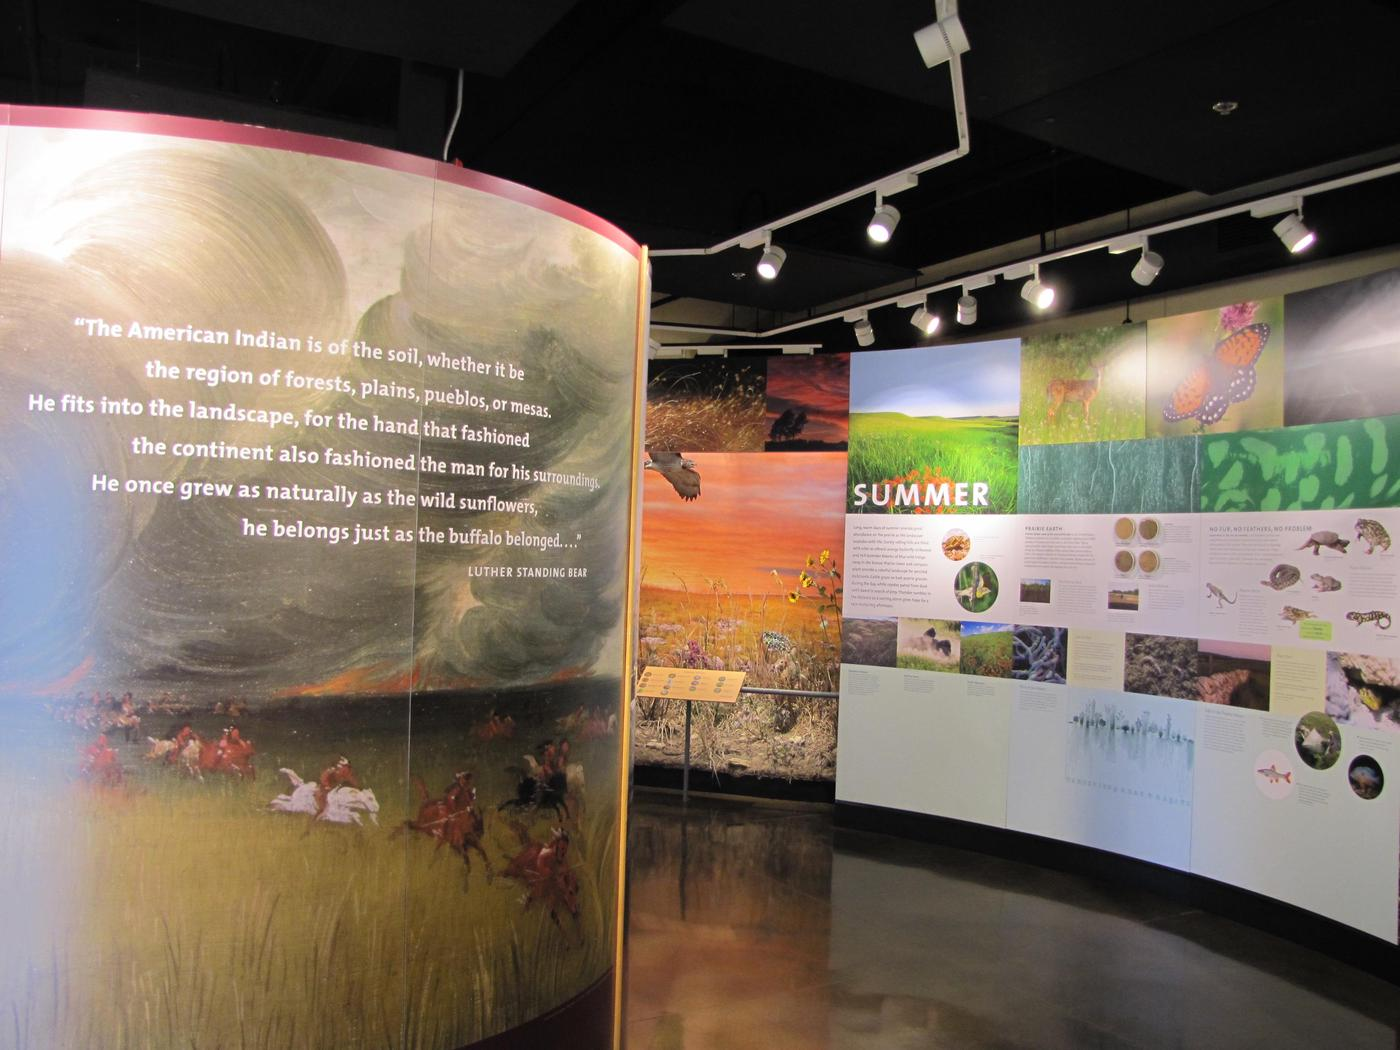 VC Interior 2Exhibits explore the history of conservation and animal diversity.